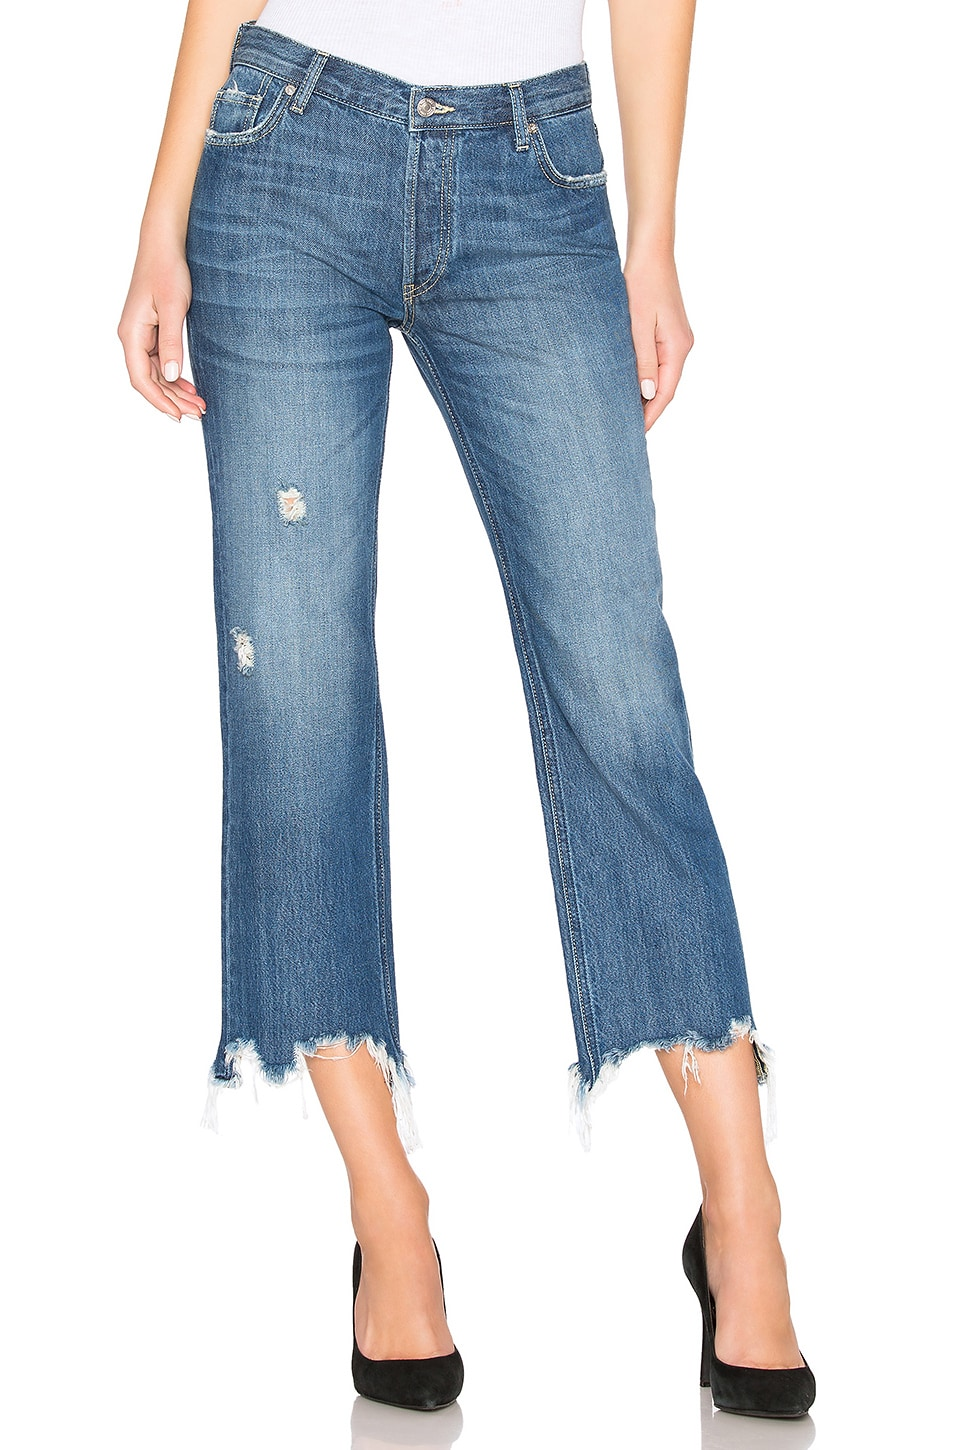 Free People Maggie Mr Straight Jean in Dark Denim